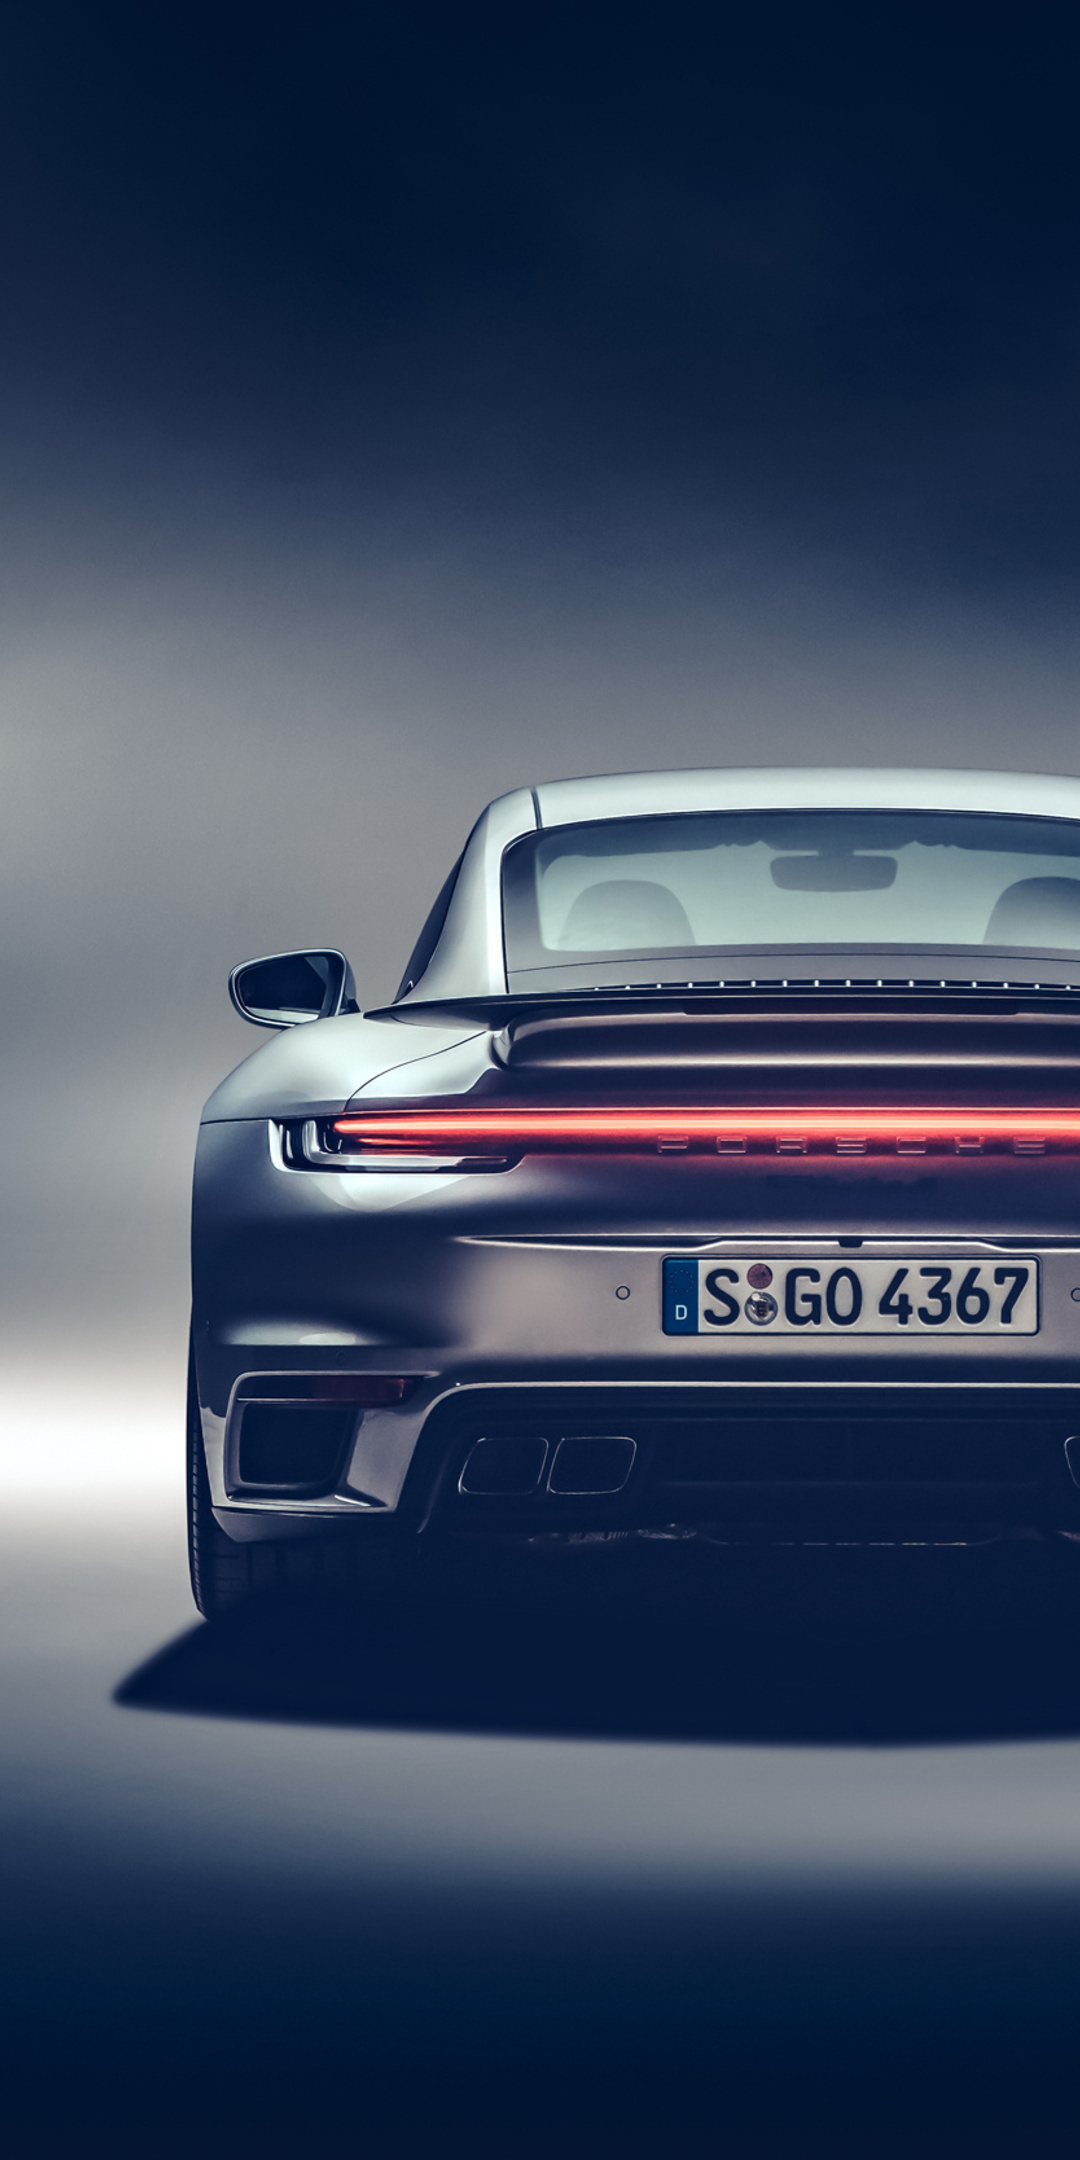 2021-porsche-911-turbo-s-rear-m5.jpg